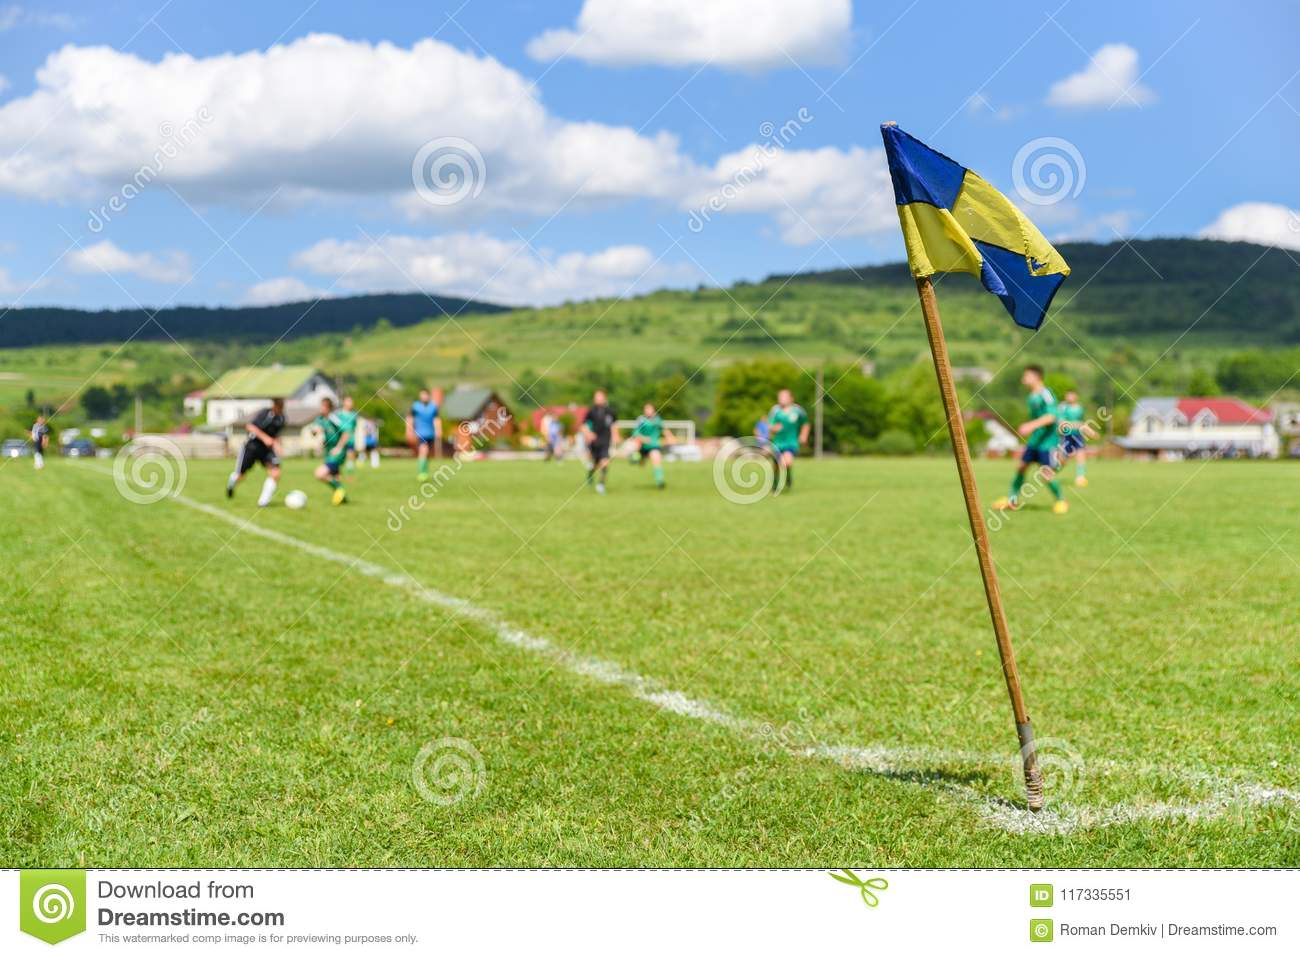 Retro corner flag on the foreground of amateur soccer field, on blurry background are football players fighting for the ball